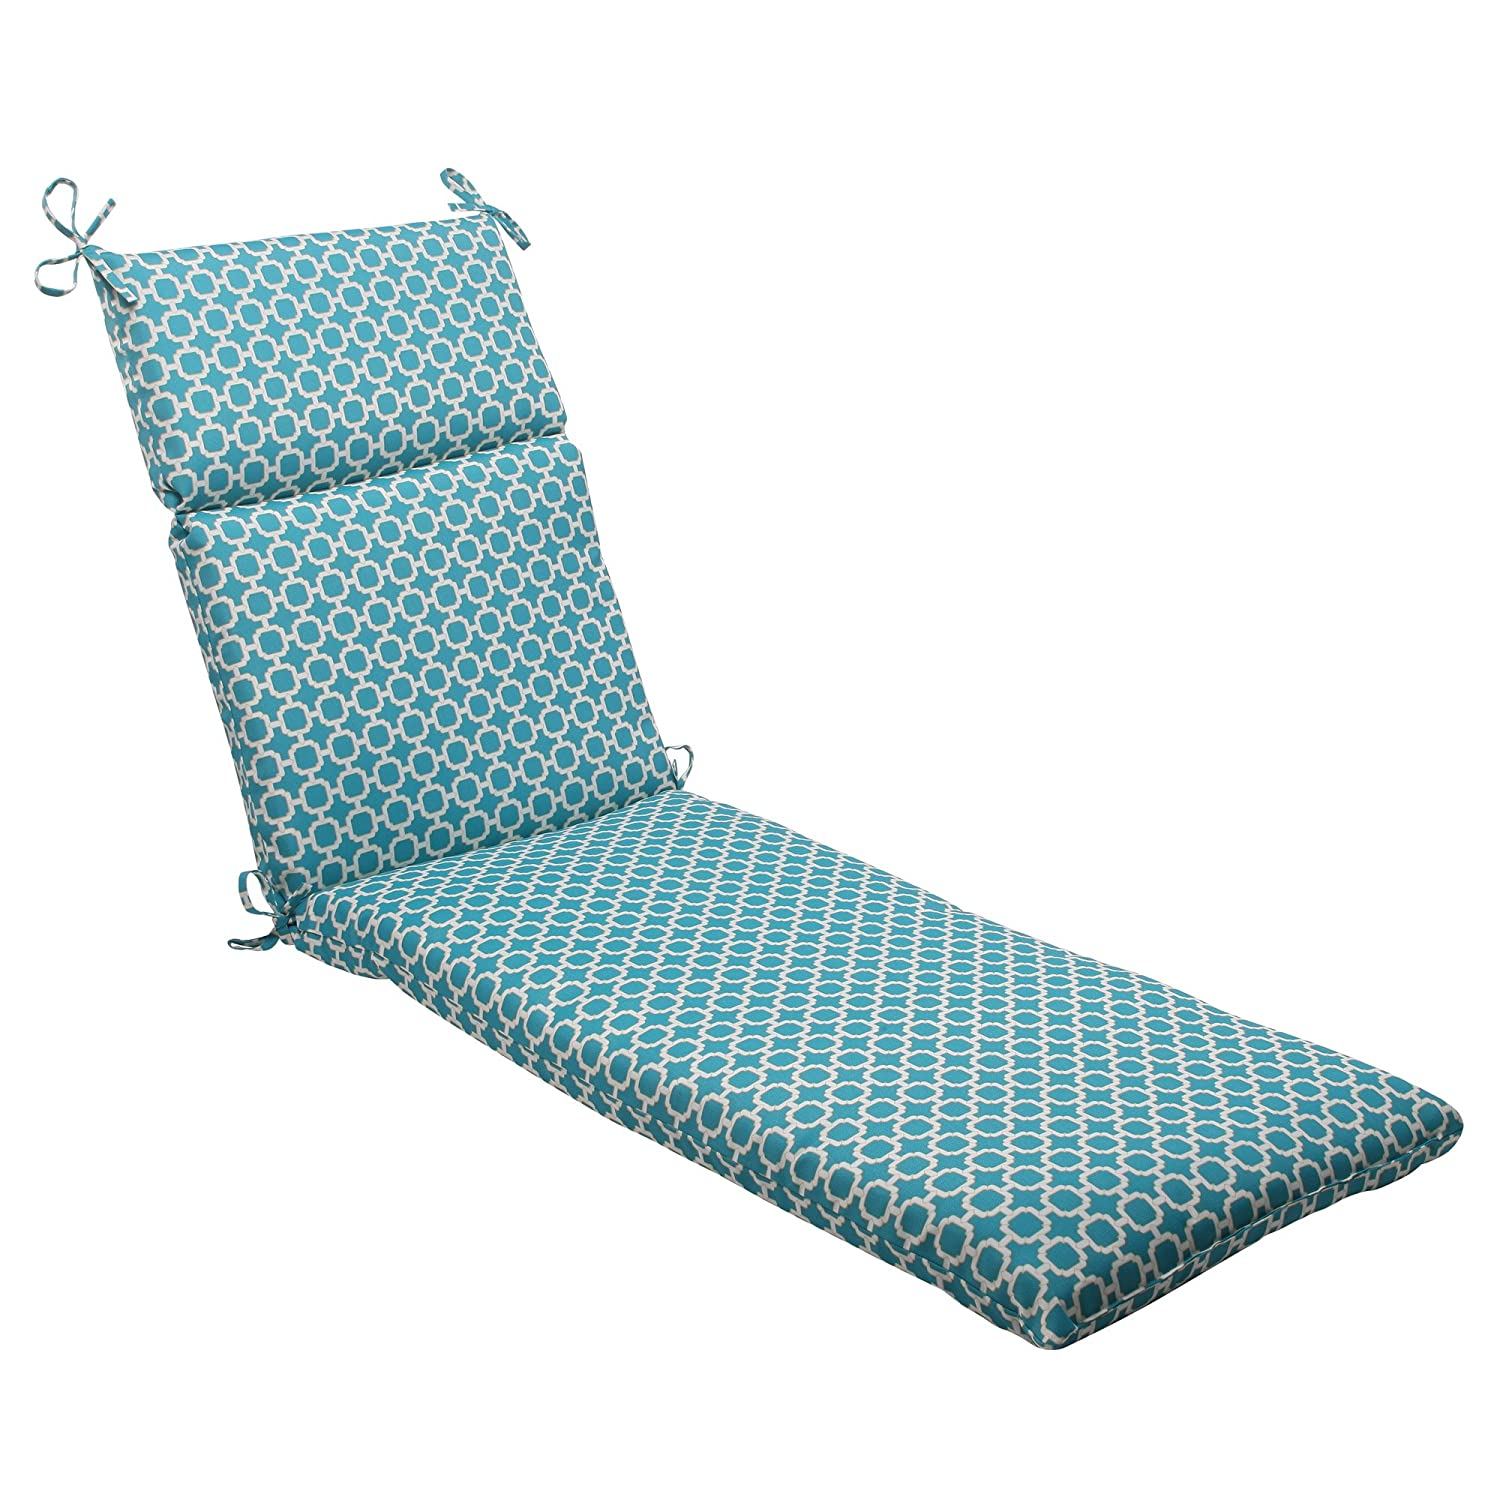 Pillow Perfect Indoor Outdoor Hockley Chaise Lounge Cushion, Teal